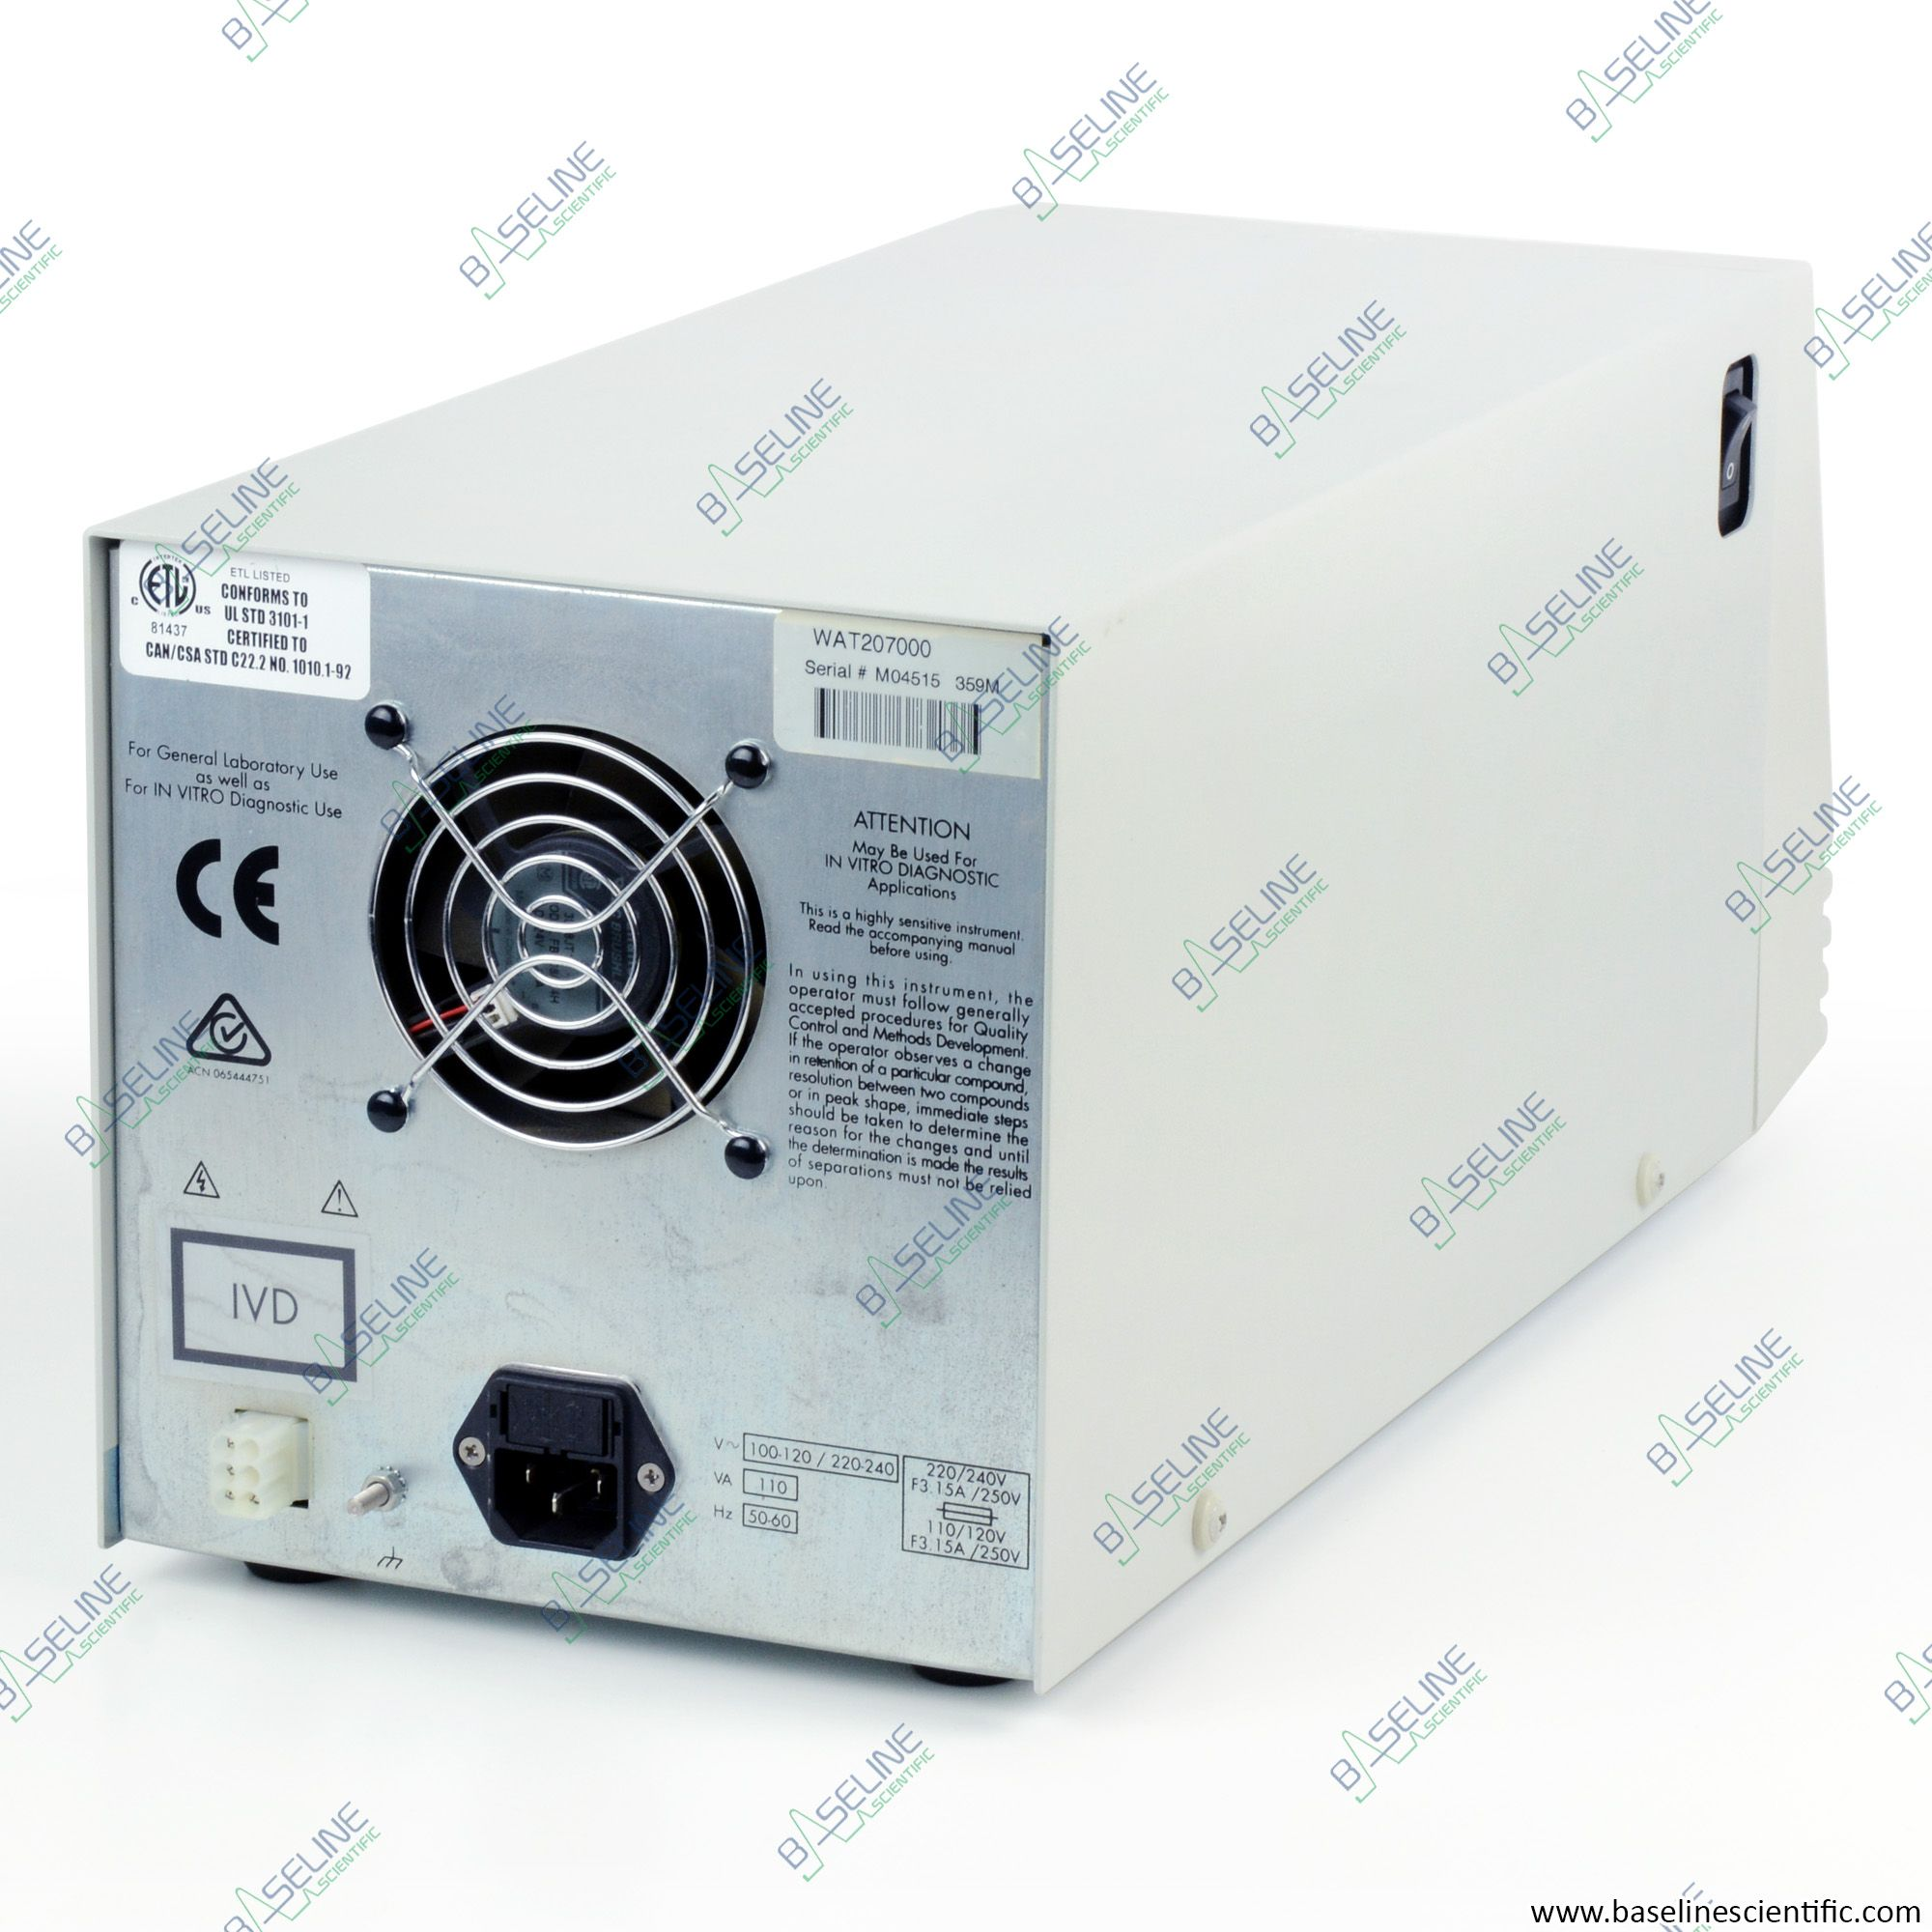 Refurbished Waters 515 HPLC Pump with ONE YEAR WARRANTY